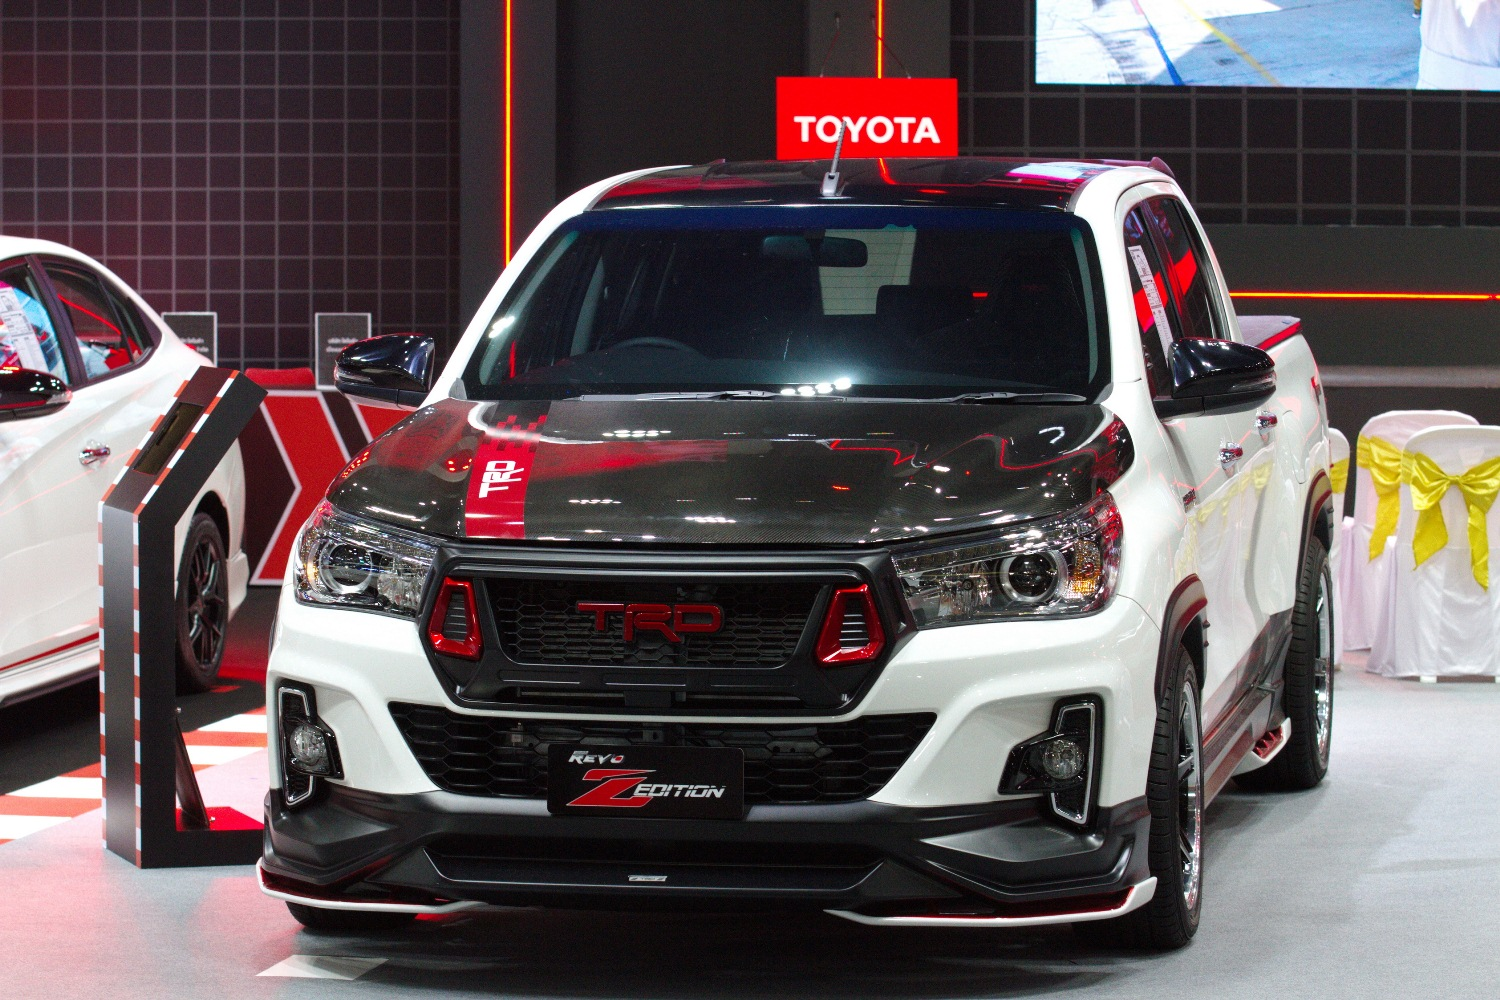 HILUX REVO Z EDITION ULTIMATE CONCEPT by TRD